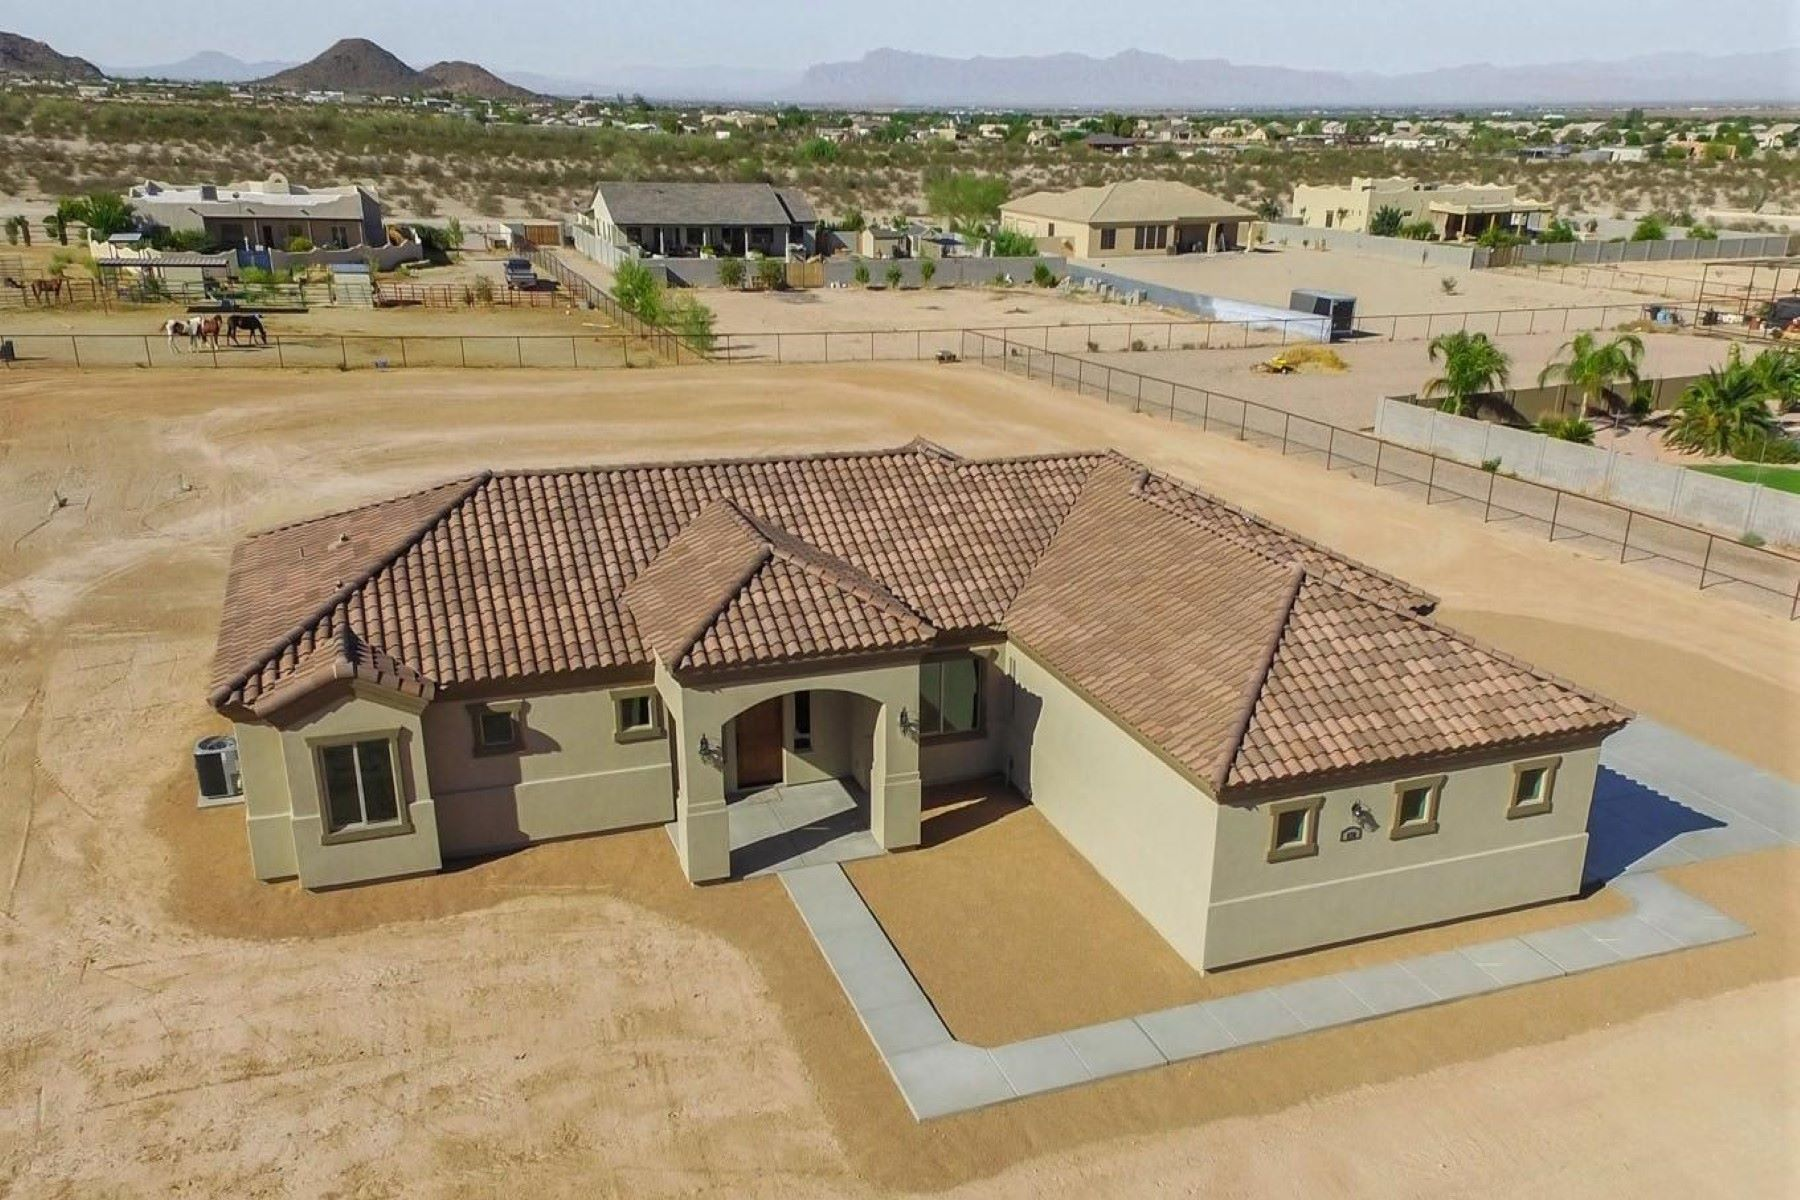 Single Family Home for Sale at Meticulously crafted well-built home 28102 N Edwards Rd San Tan Valley, Arizona, 85143 United States